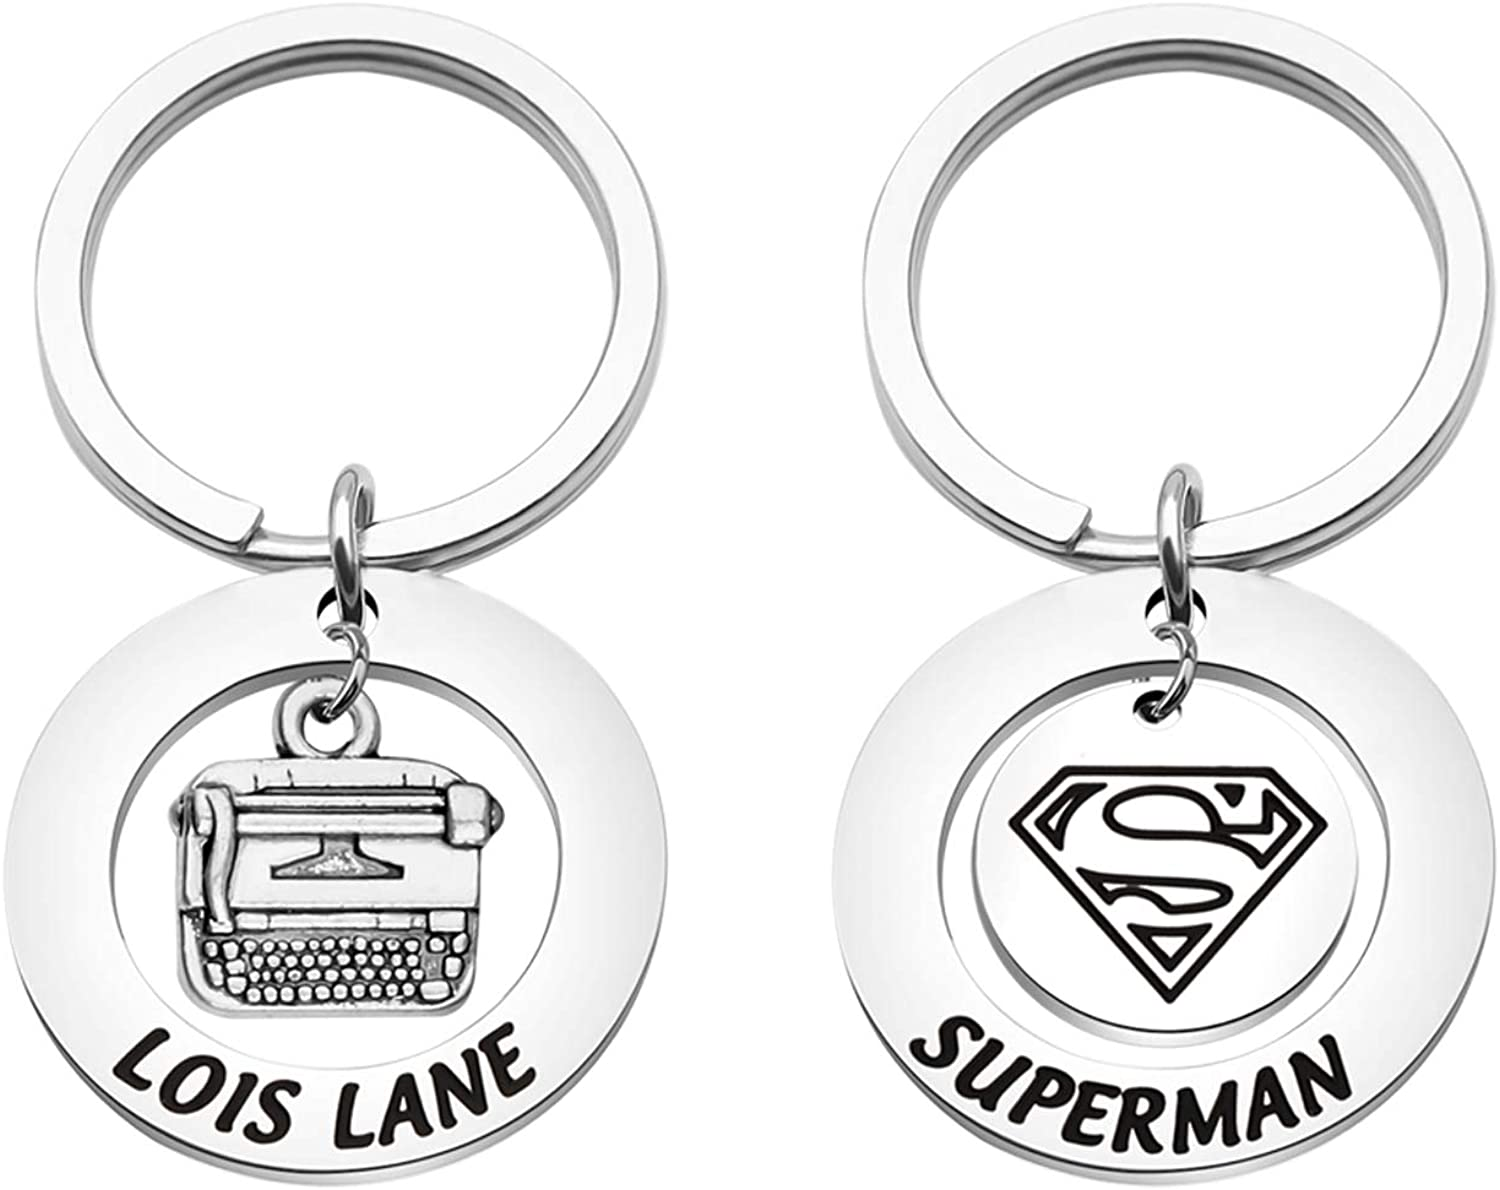 PLITI Superman /& Lois Lane Keychain Set Couple Keyring Dc Comics Fans Gifts Superhero Gifts Clark Kent and Lois Lane Gifts Marvel Avengers Gifts for Couples